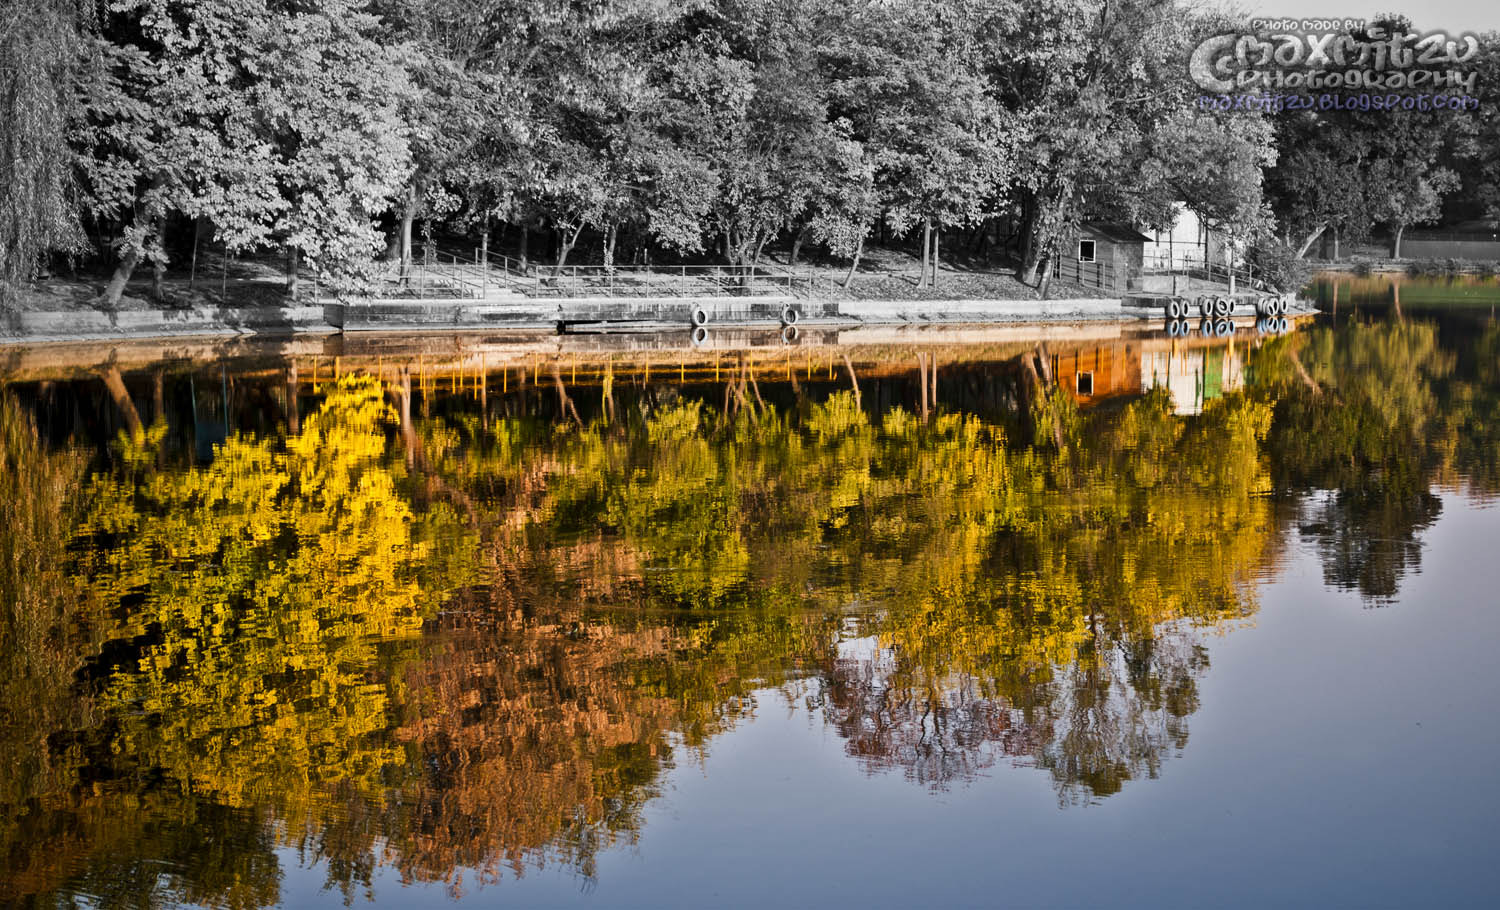 Photograph Reflections by Mihai Maxim on 500px